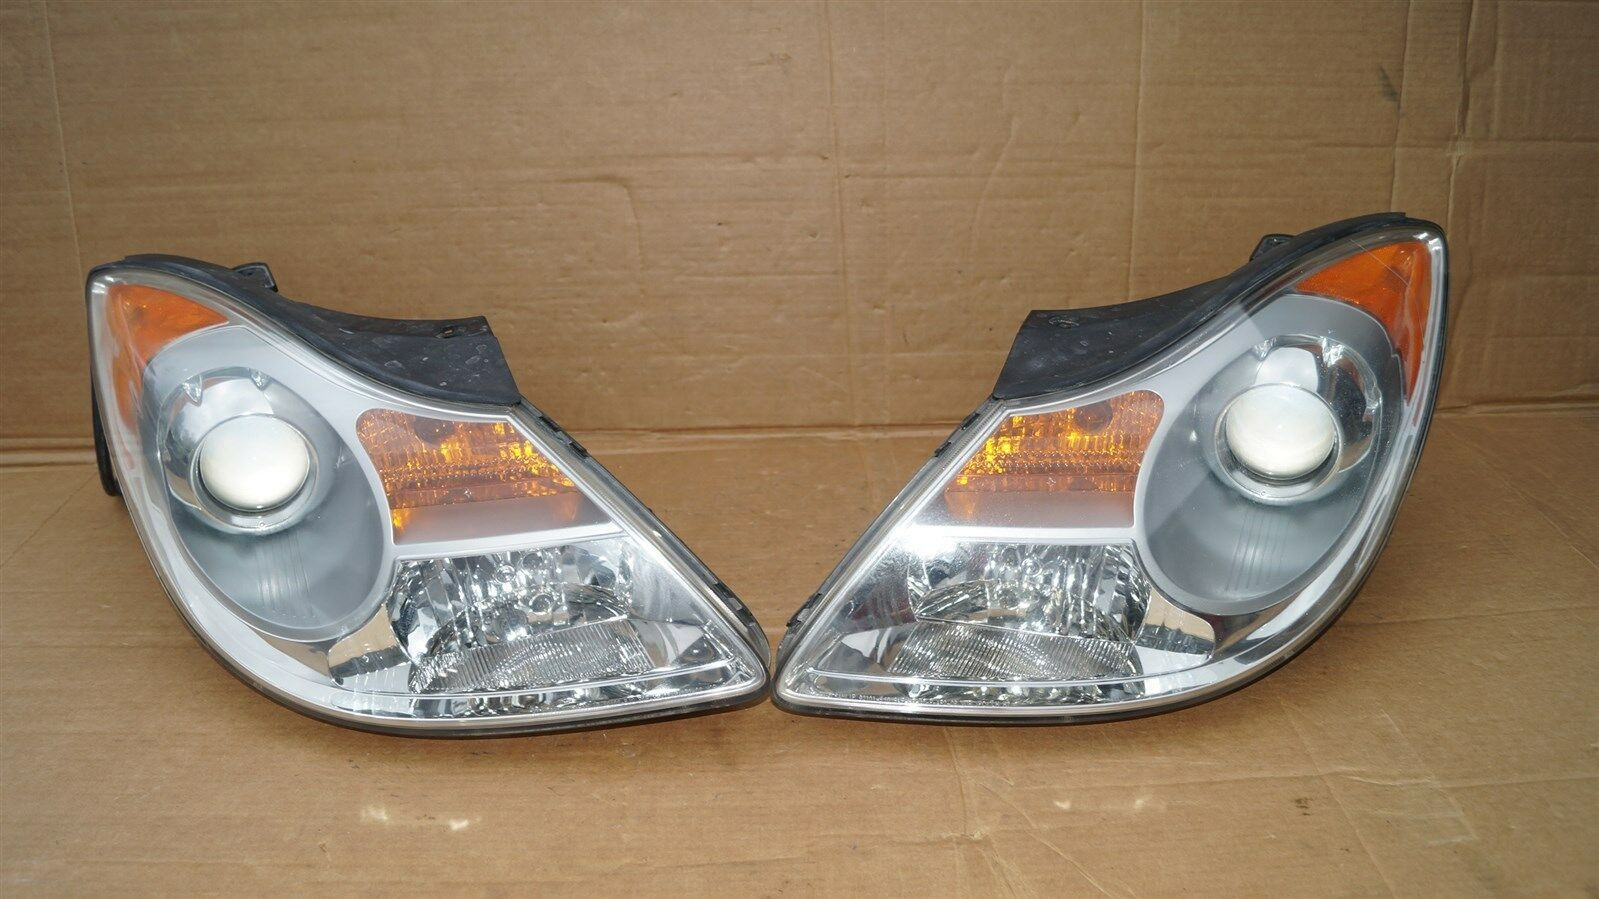 07-12 Hyundai Veracruz Halogen Headlight Head Lights Matching Set LH&RH POLISHED